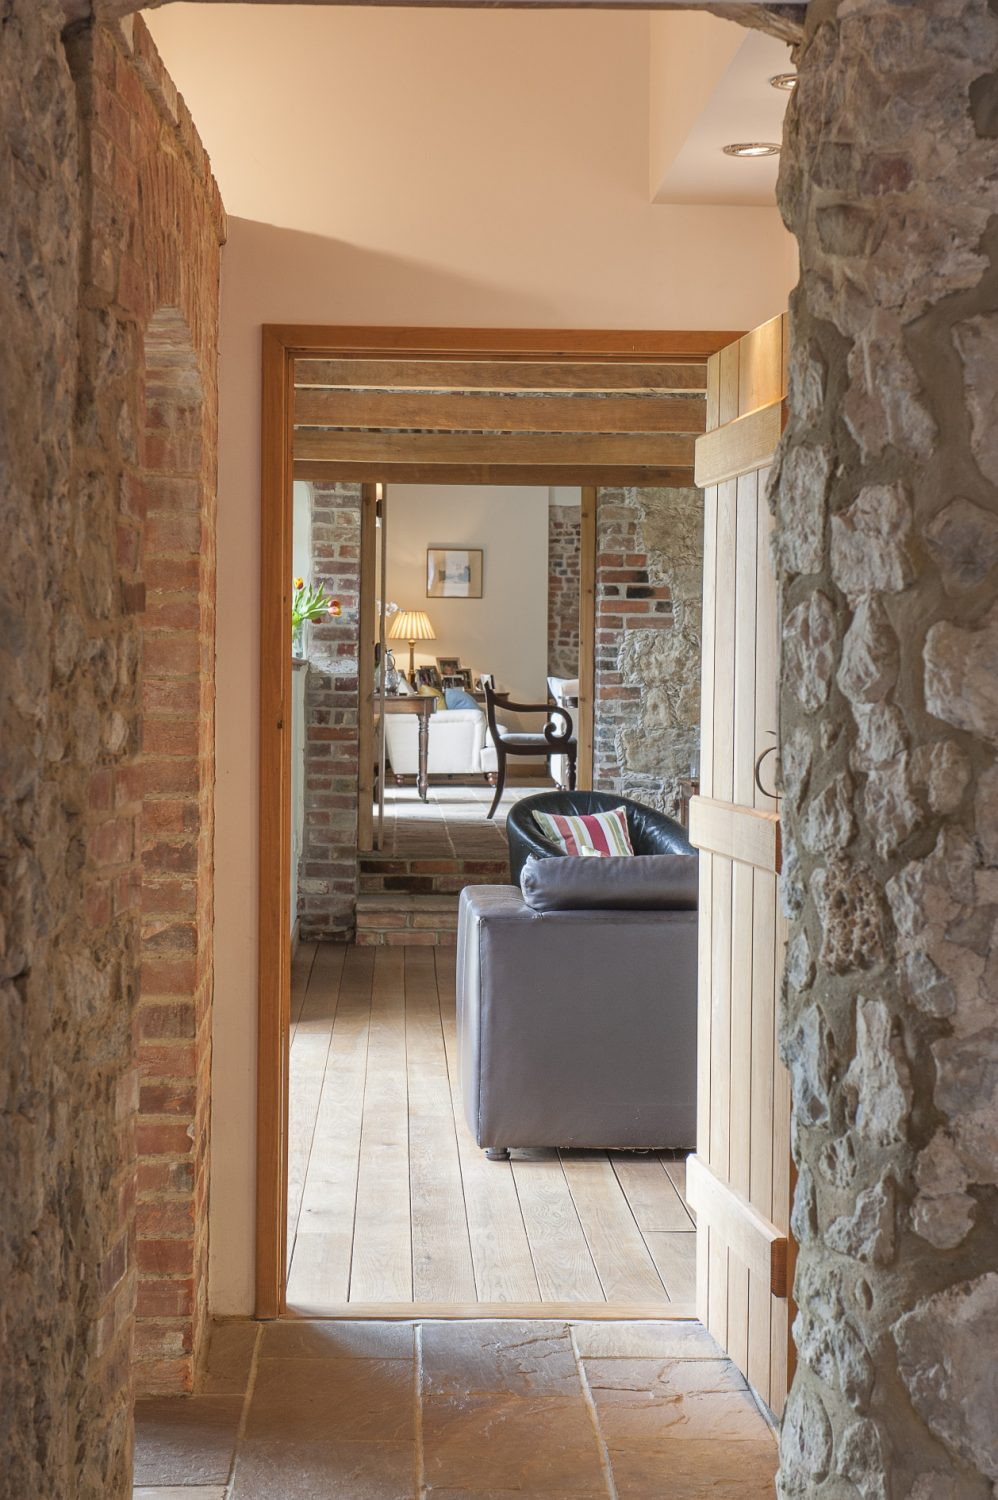 Perpendicular to the kitchen, a short corridor leads to the sitting and dining room